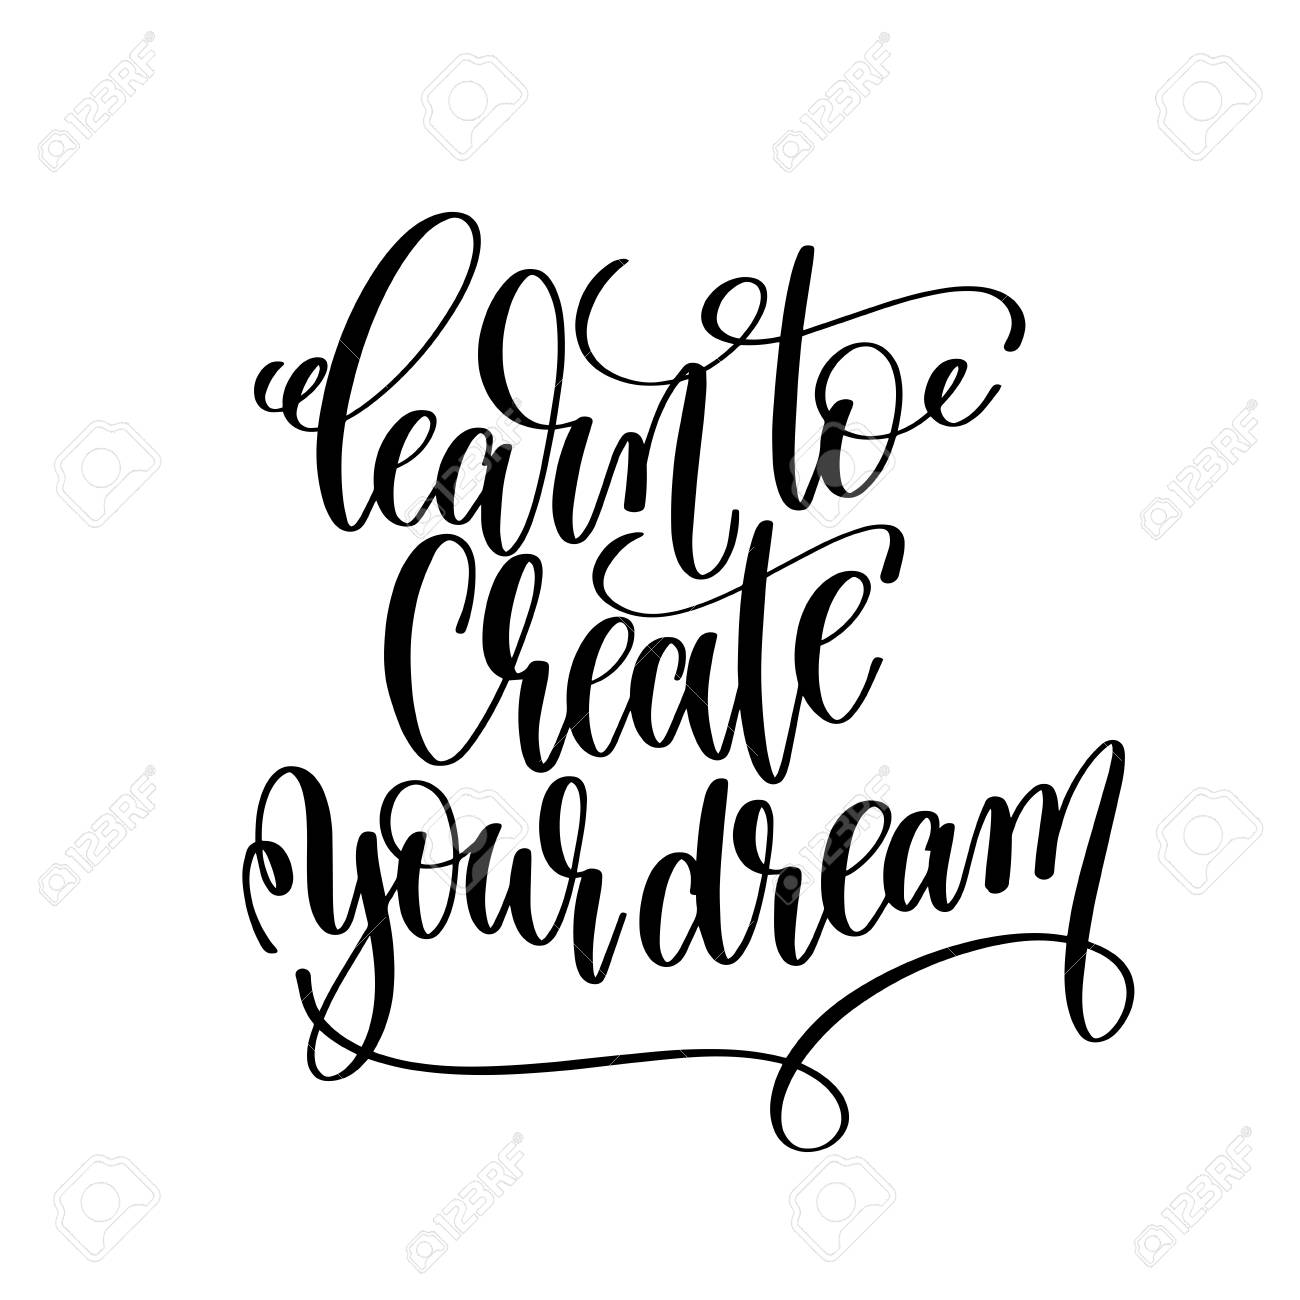 Learn To Create Your Dream Black And White Hand Written Lettering Positive Quote Motivation